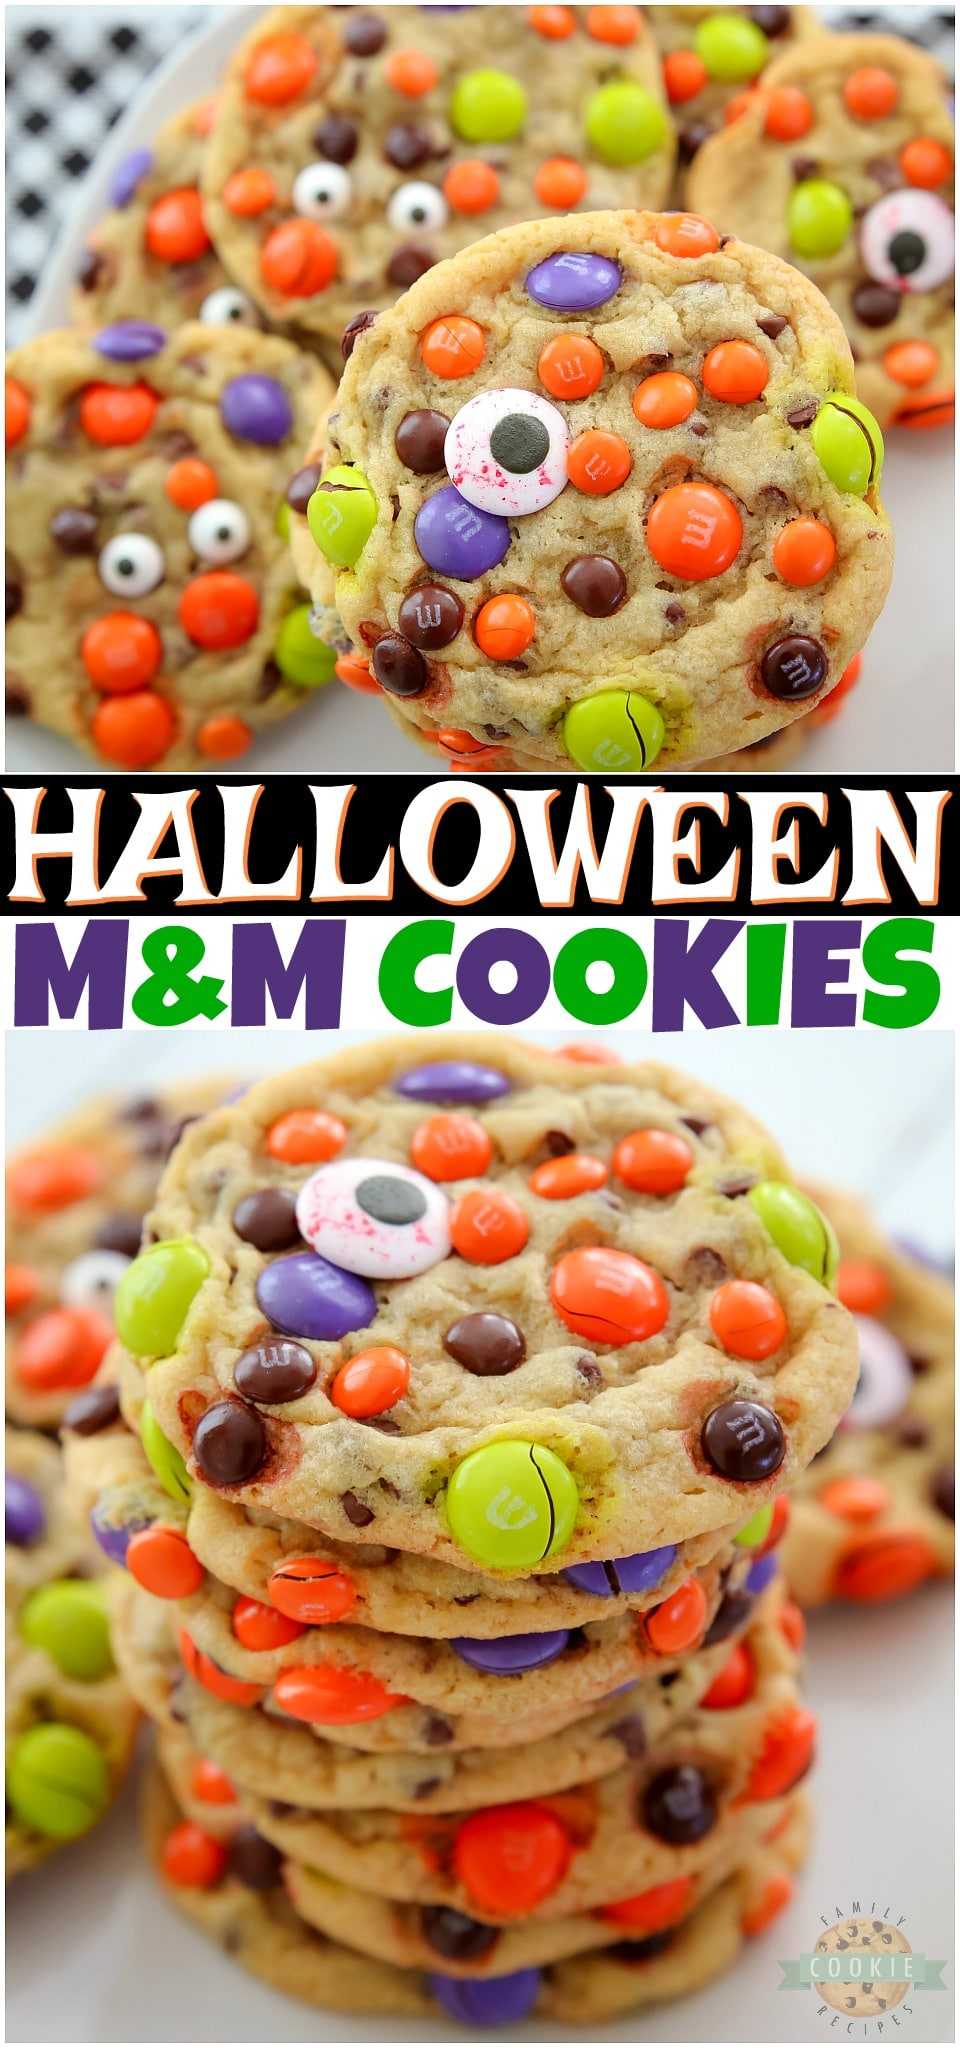 Perfect M&M HALLOWEEN Cookies made with butter, sugars, pudding mix & festive M&M's candies! Fun & festive Halloween Cookie recipe with candy that everyone loves!